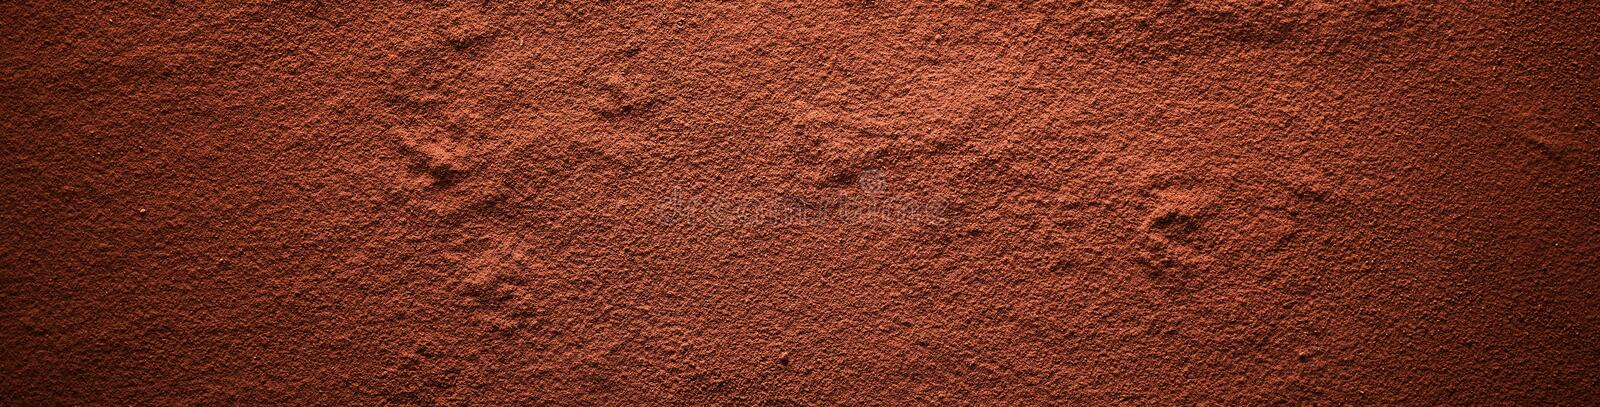 Cocoa powder surface banner. Viewed in full frame from above with darkened vignette effect royalty free stock photos